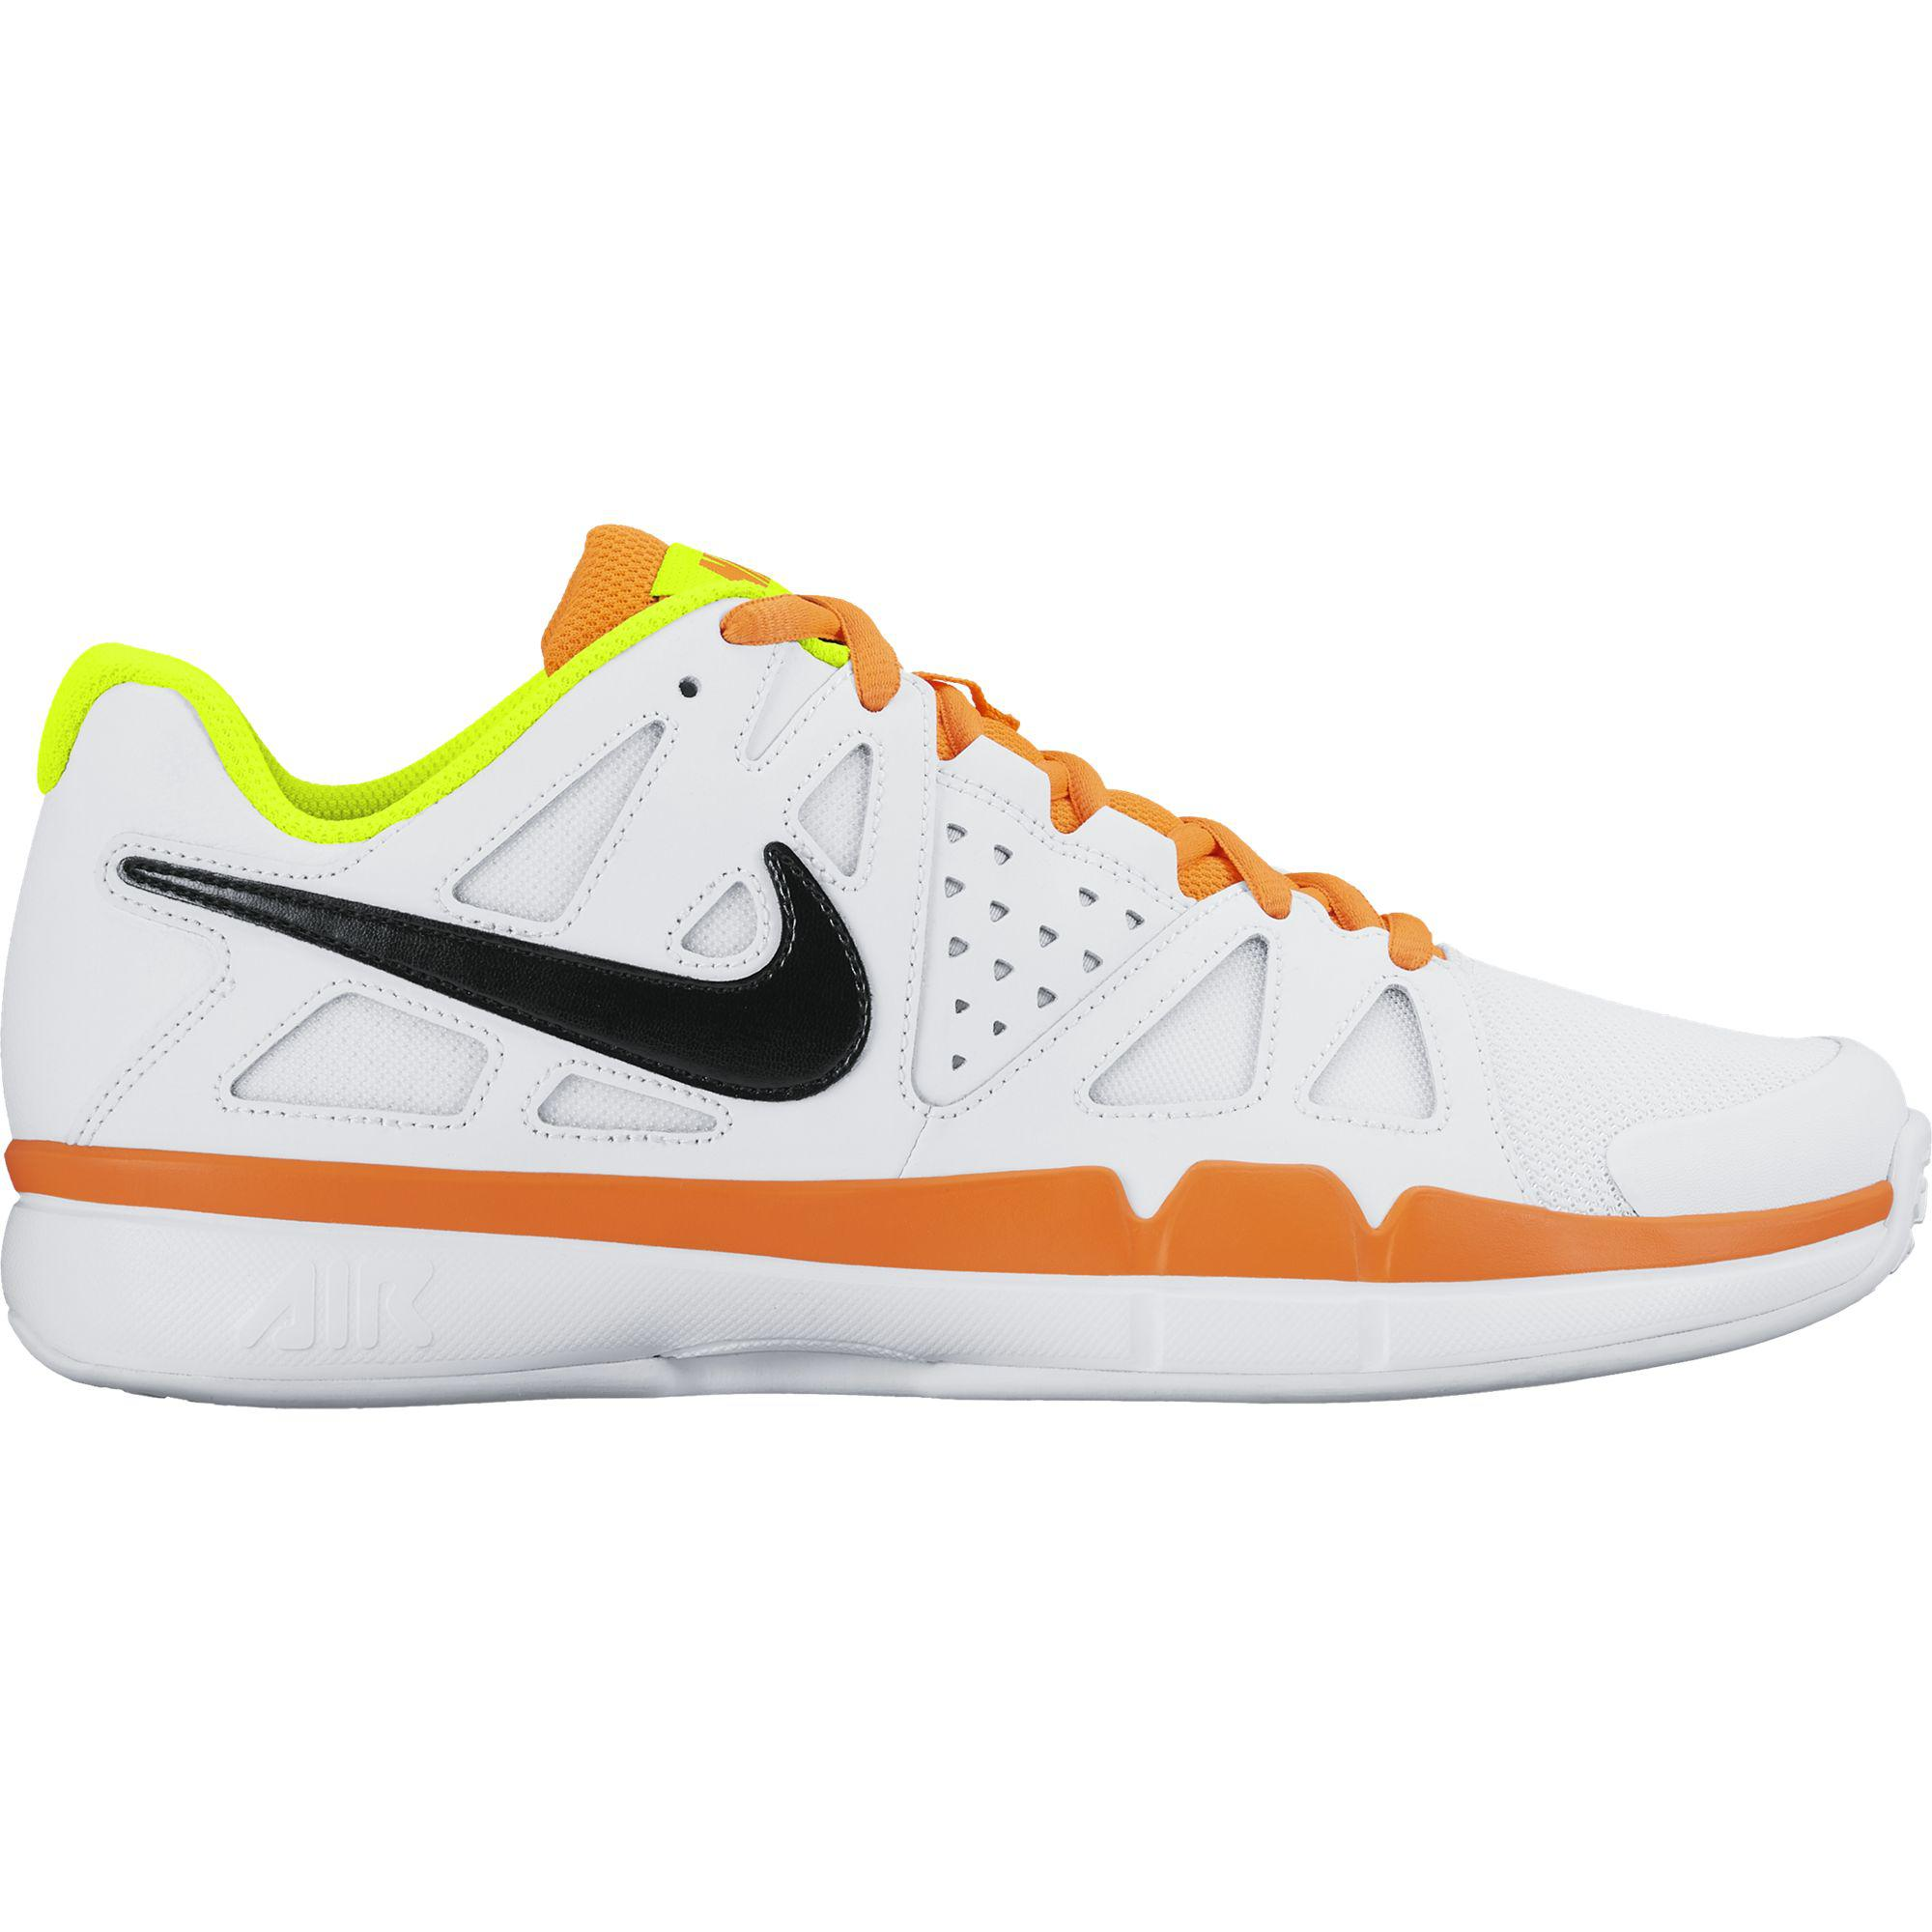 Nike Mens Air Vapor Advantage Omni Court Tennis Shoes - White/Volt/Total  Orange